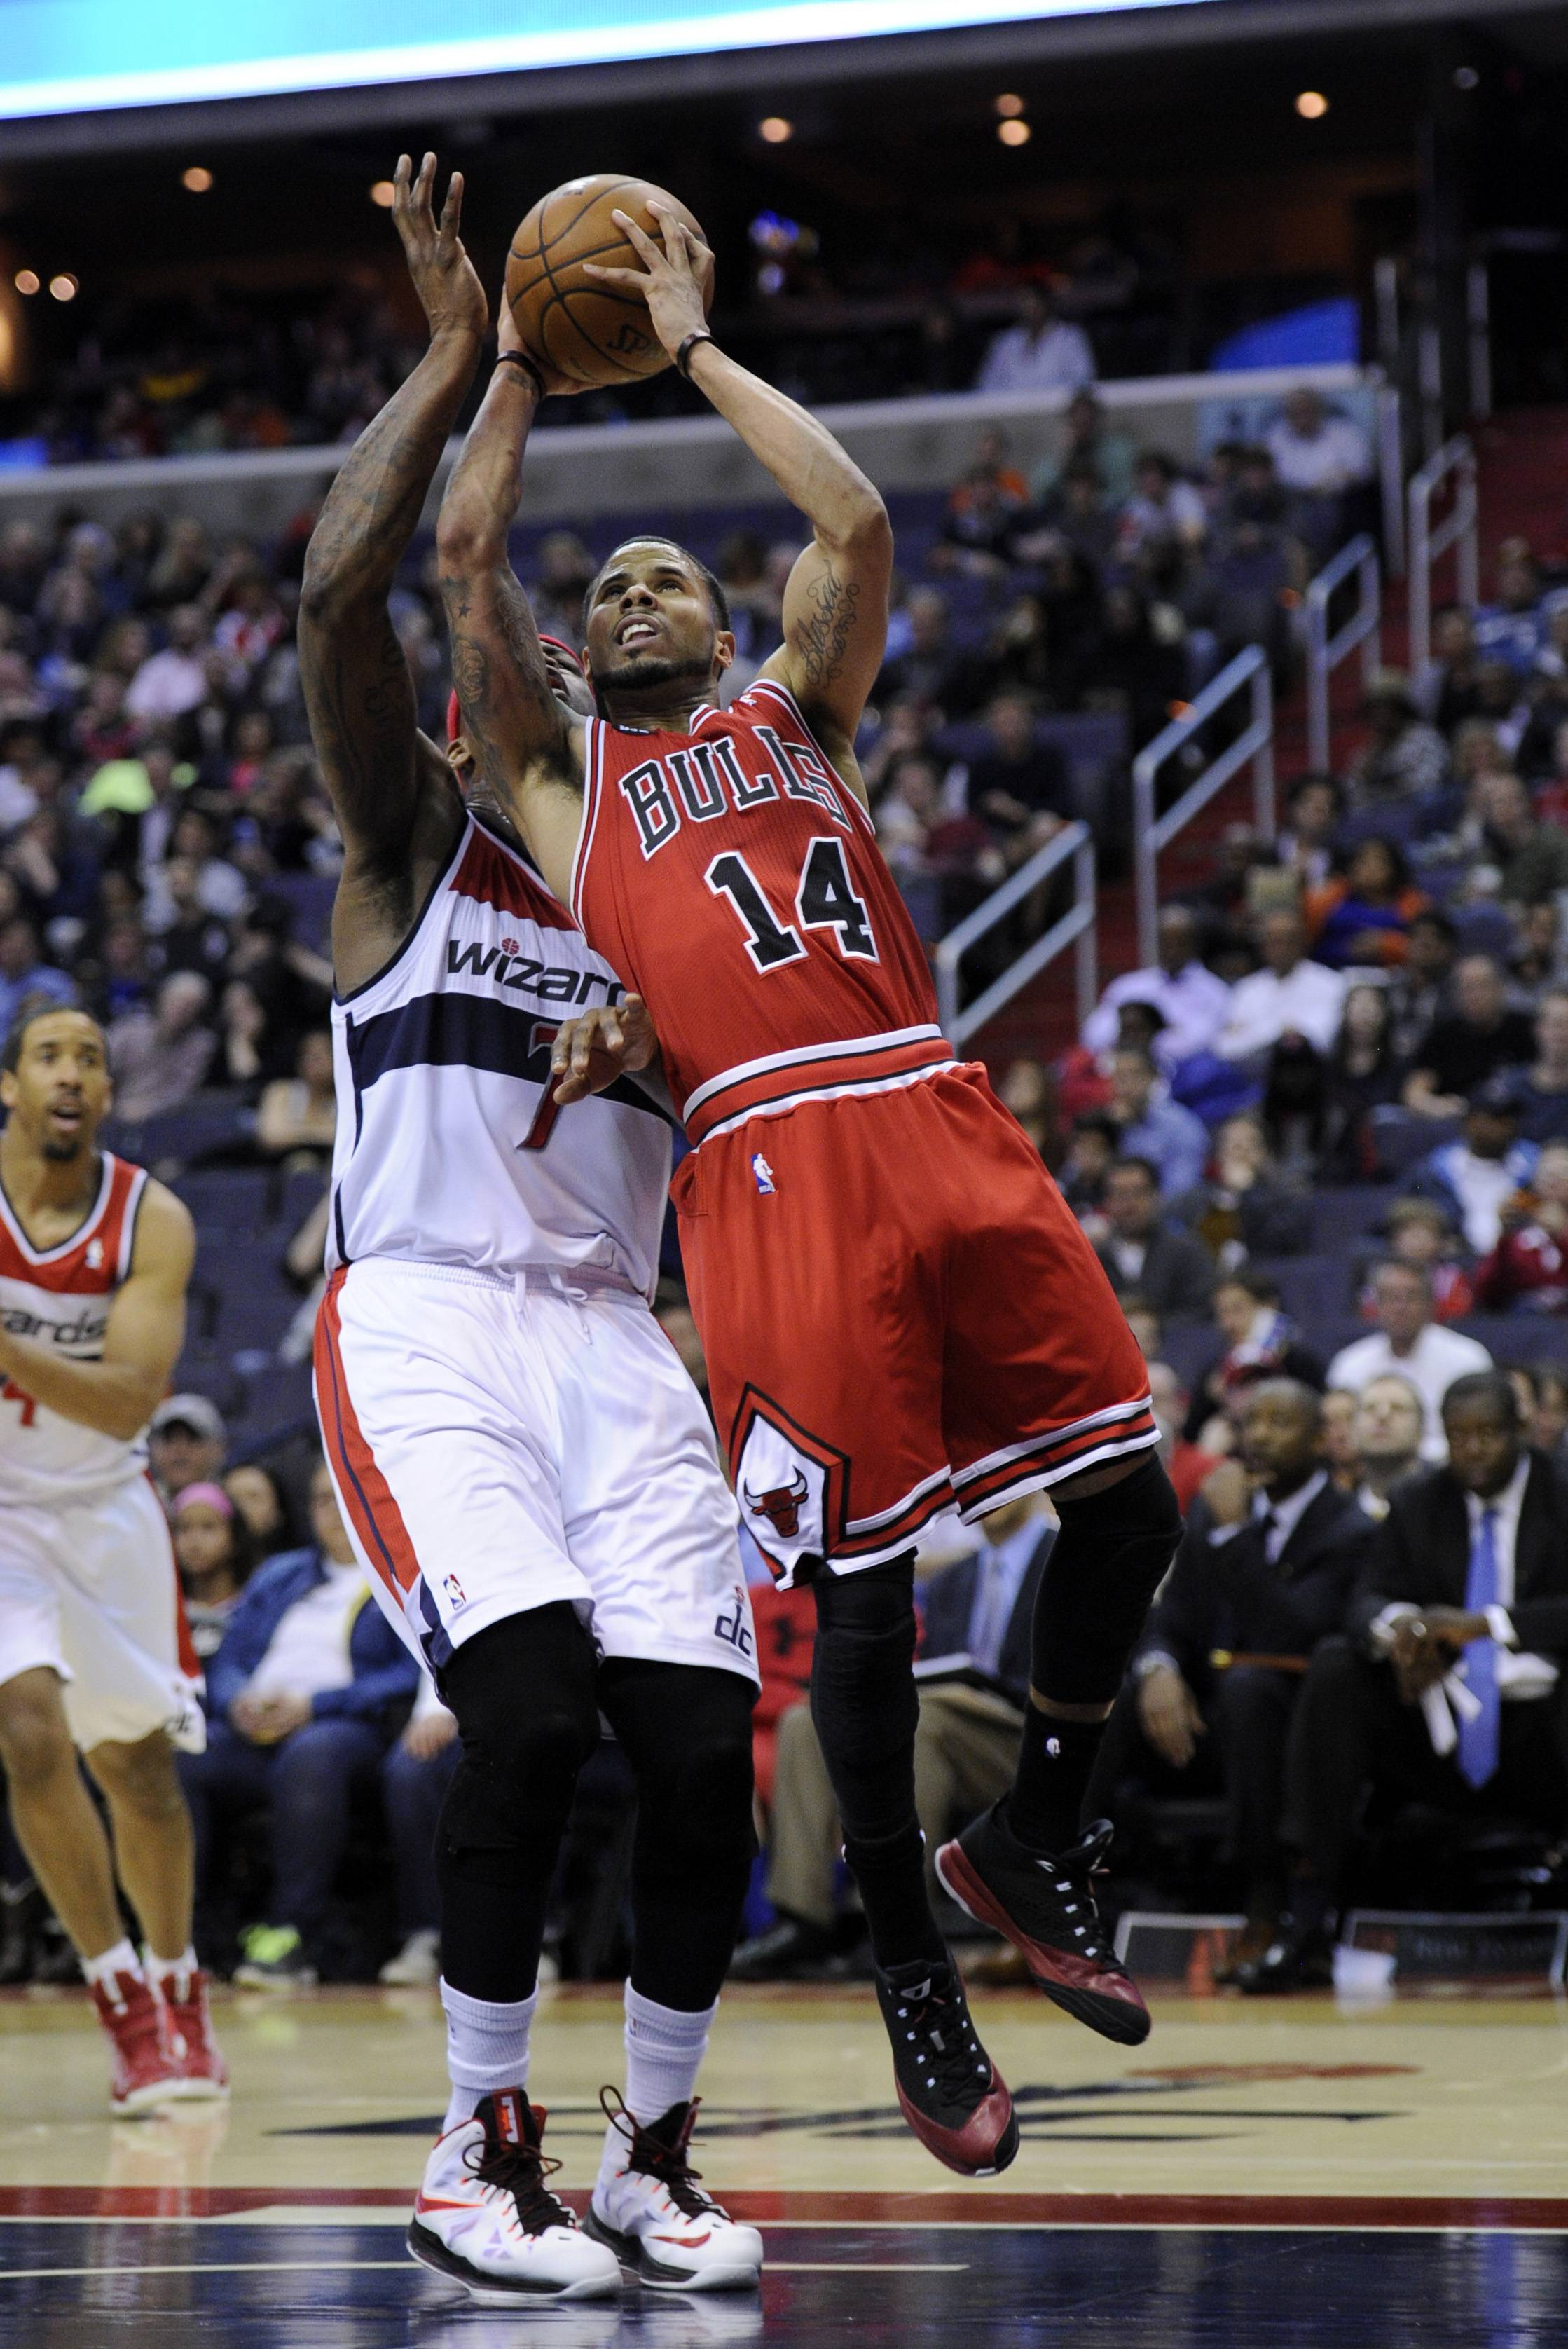 Chicago Bulls guard D.J. Augustin (14) goes to the basket against Washington Wizards forward Al Harrington (7) during Saturday's game in Washington. Augustin scored 25 points Saturday night, helping the Bulls to a 96-78 win over the Washington Wizards.